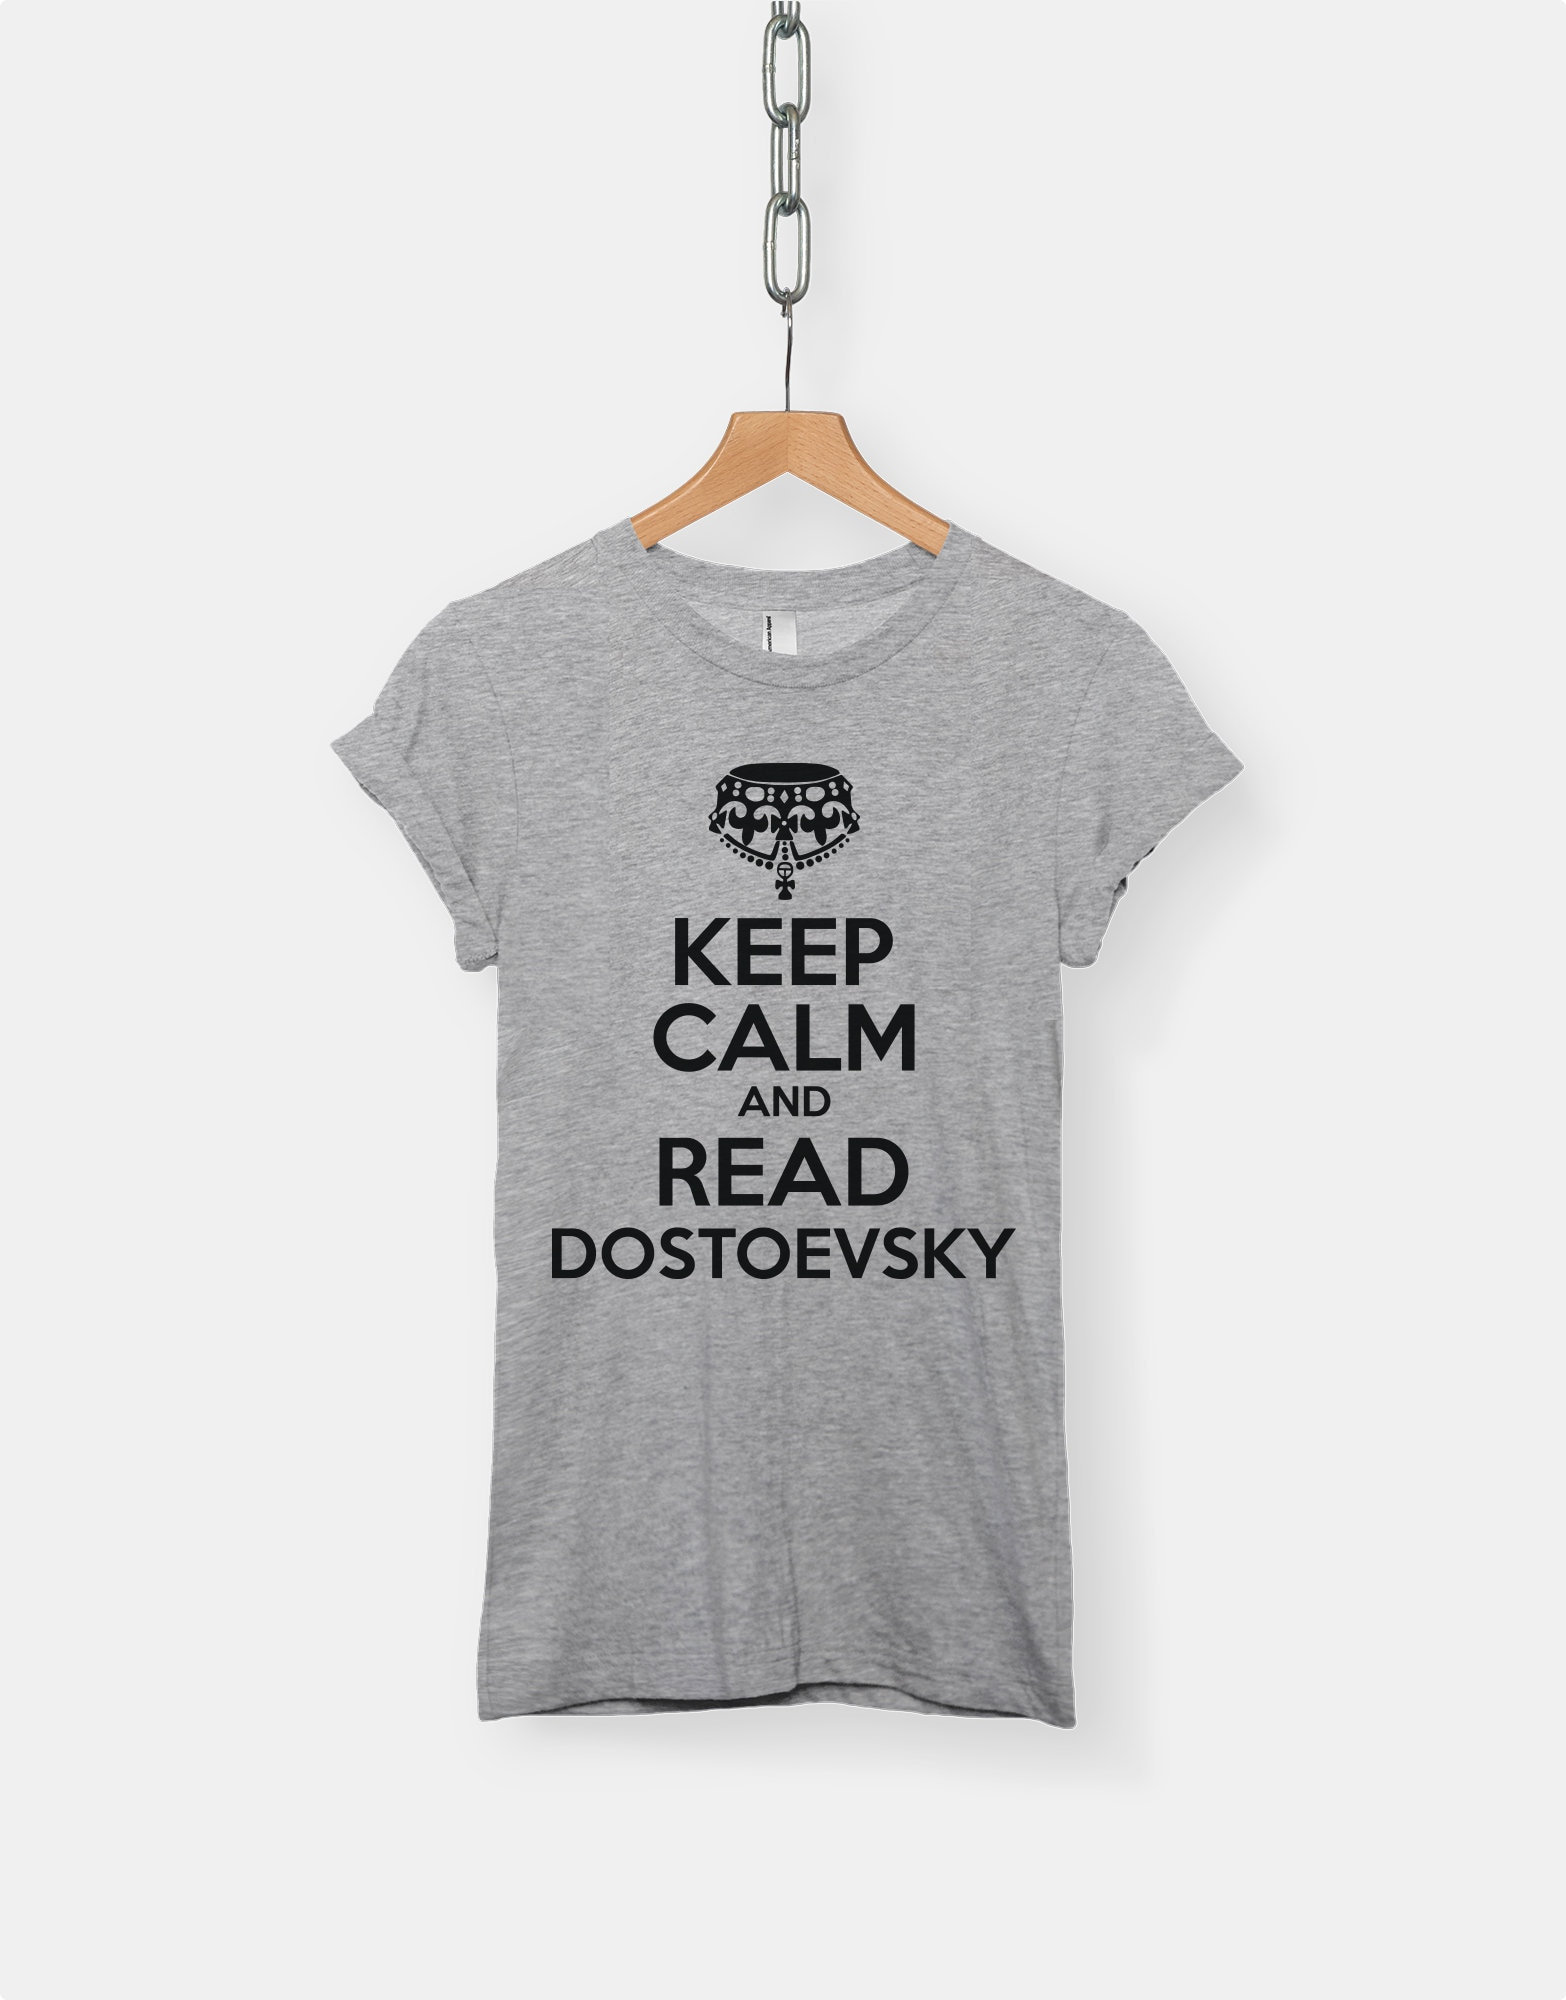 2a2d4065a Keep Calm And Read Dostoevsky t-shirt tee // literary t-shirts | Etsy